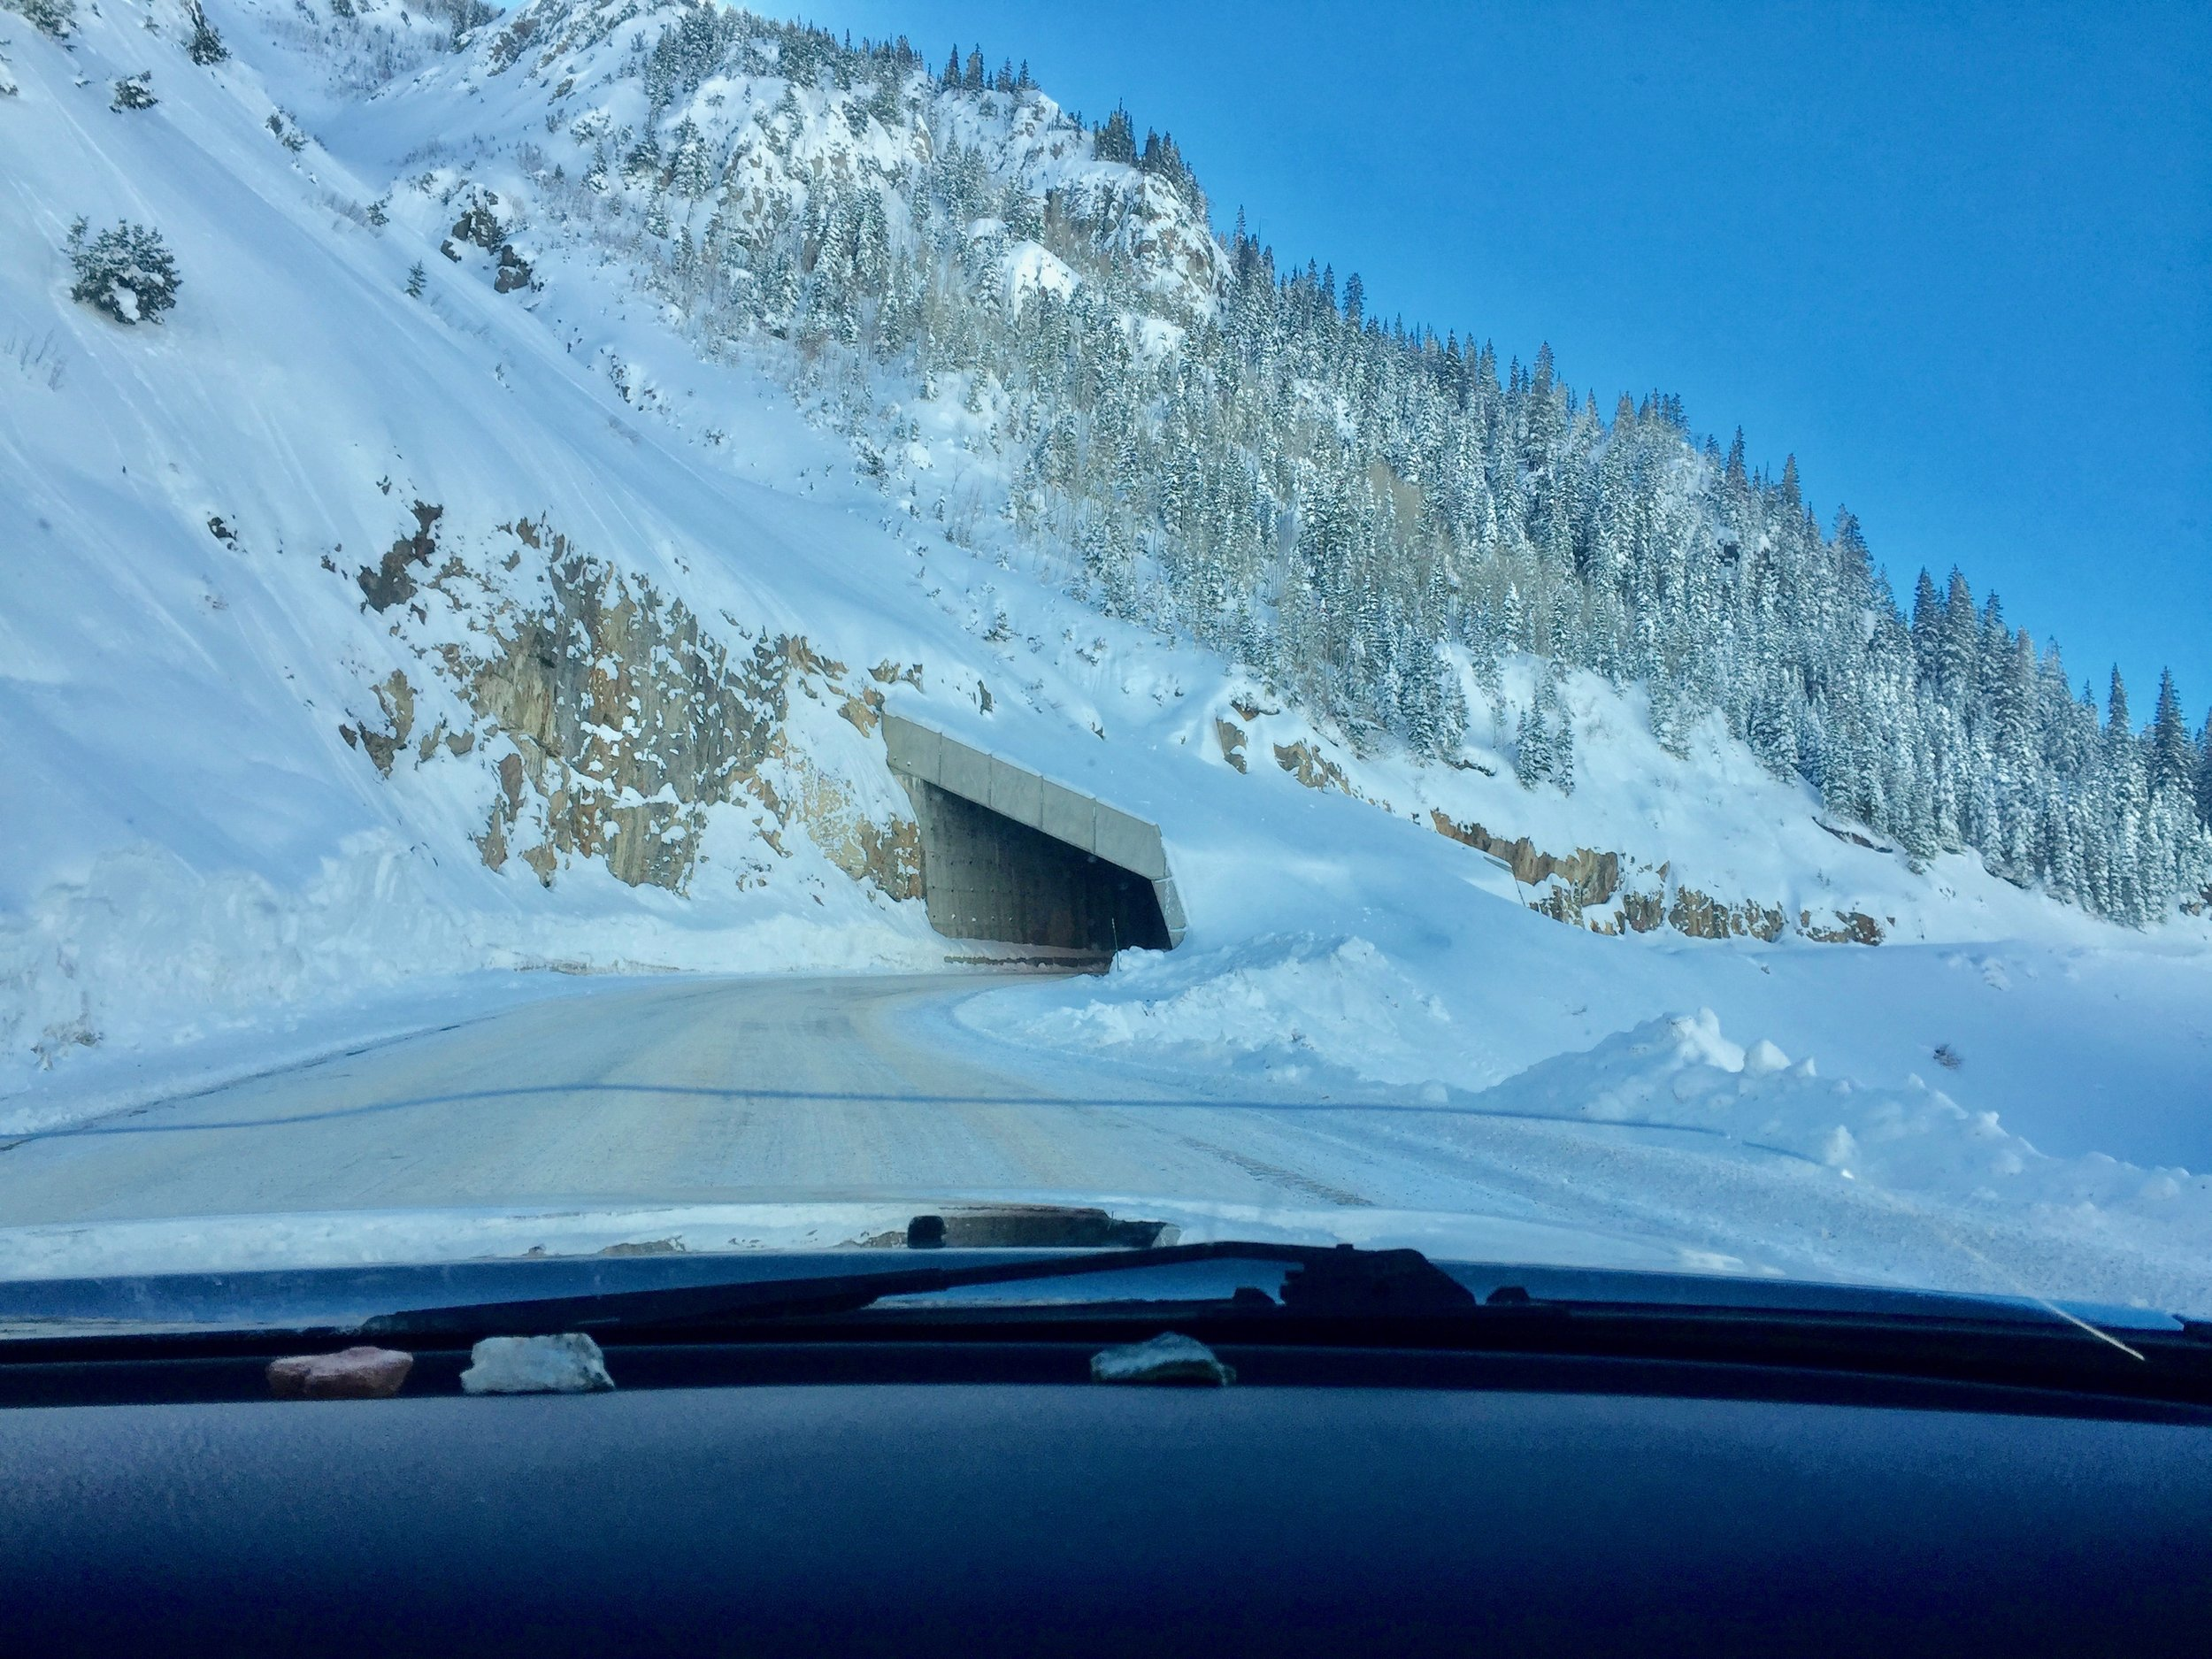 Avalanche shed over the road. Not something you see on the east coast!